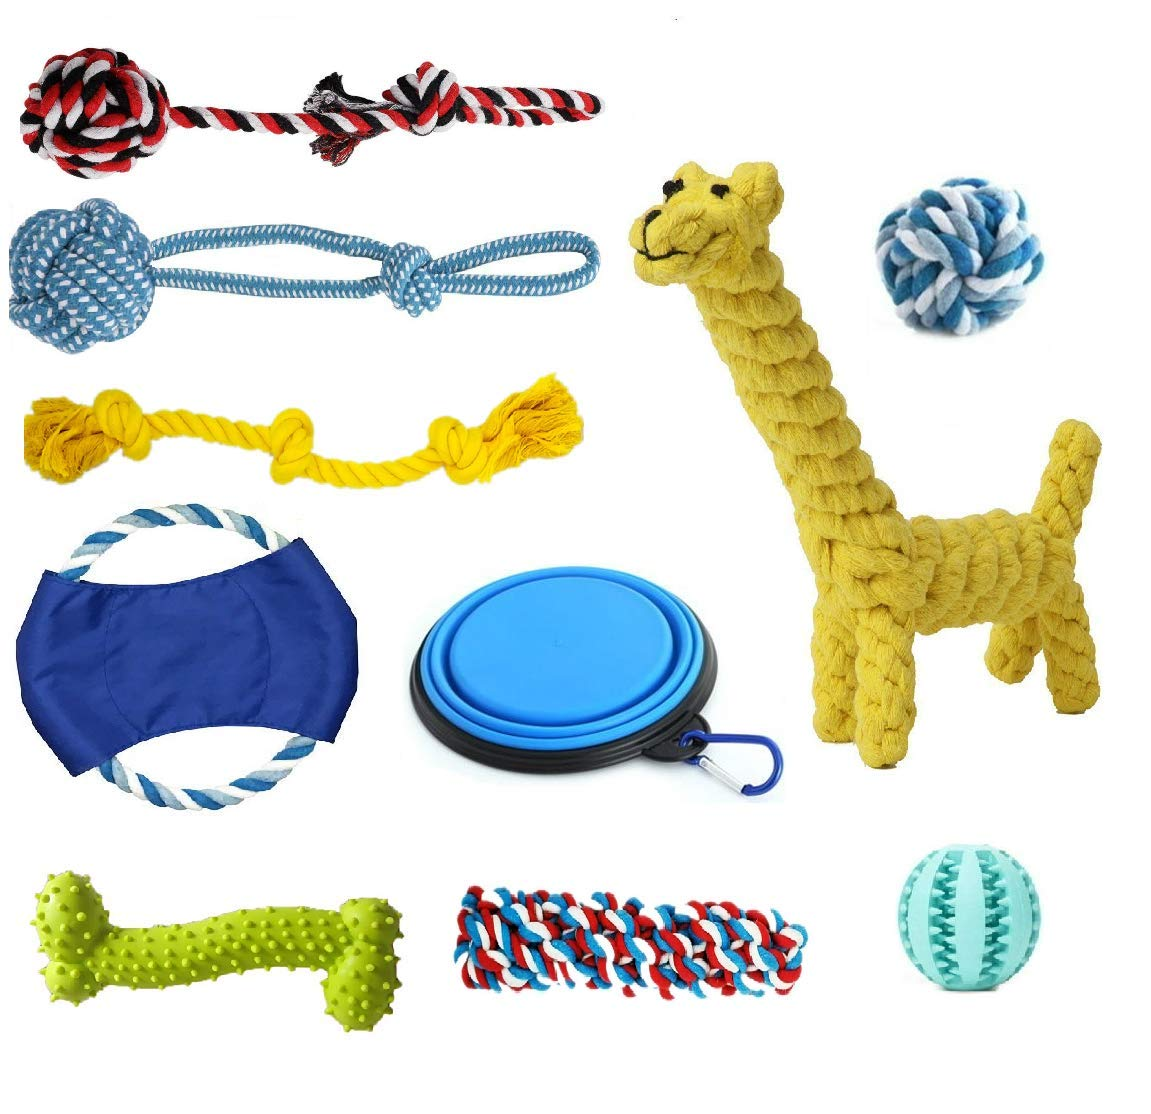 BUENTEK-Dog-Toys-Set-10-Pack-Gift-Set-Ball-Rope-and-Chew-Squeaky-Toys-for-Small-to-Big-Dog